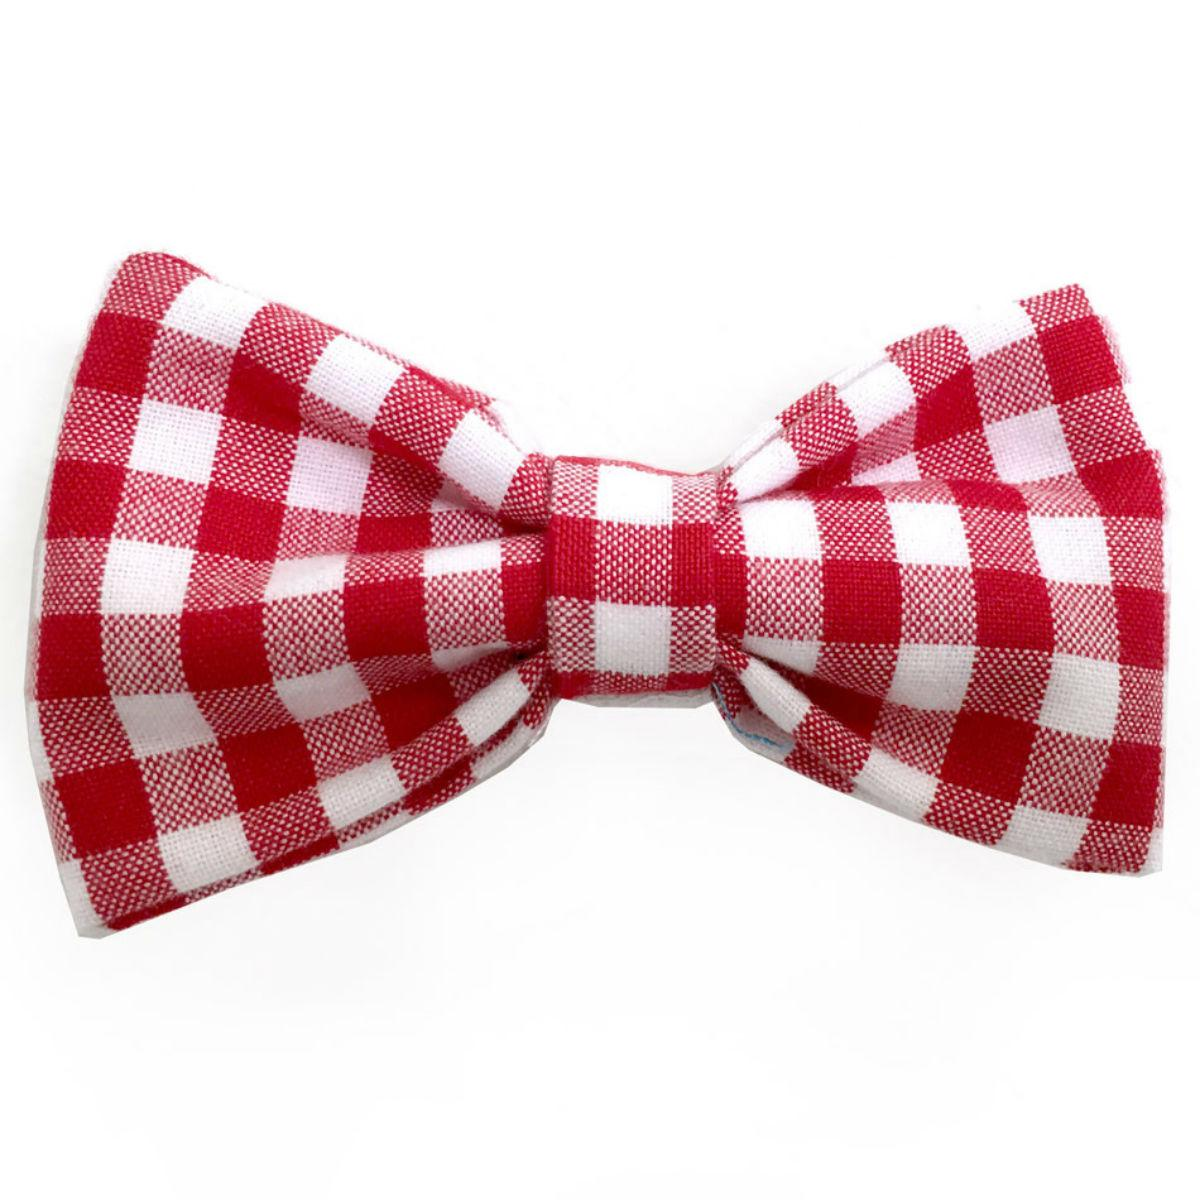 Gingham Dog Bow Tie from Daisy and Lucy - Red